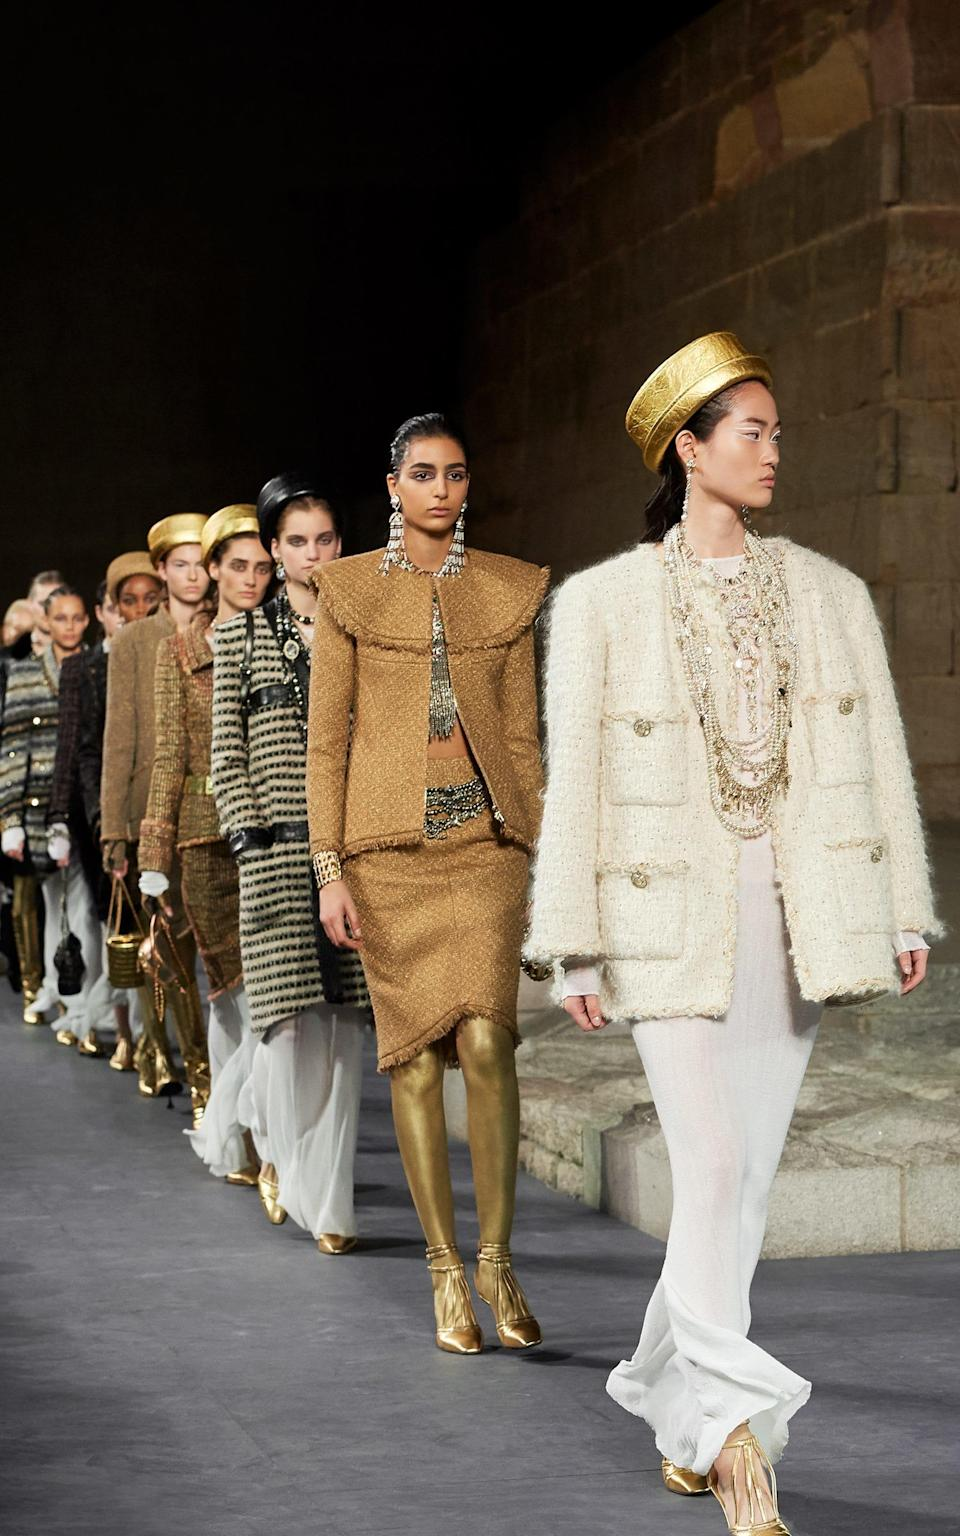 Models with legs painted gold wear embellished tweed and carry scarab-shaped iridescent bags - Chanel